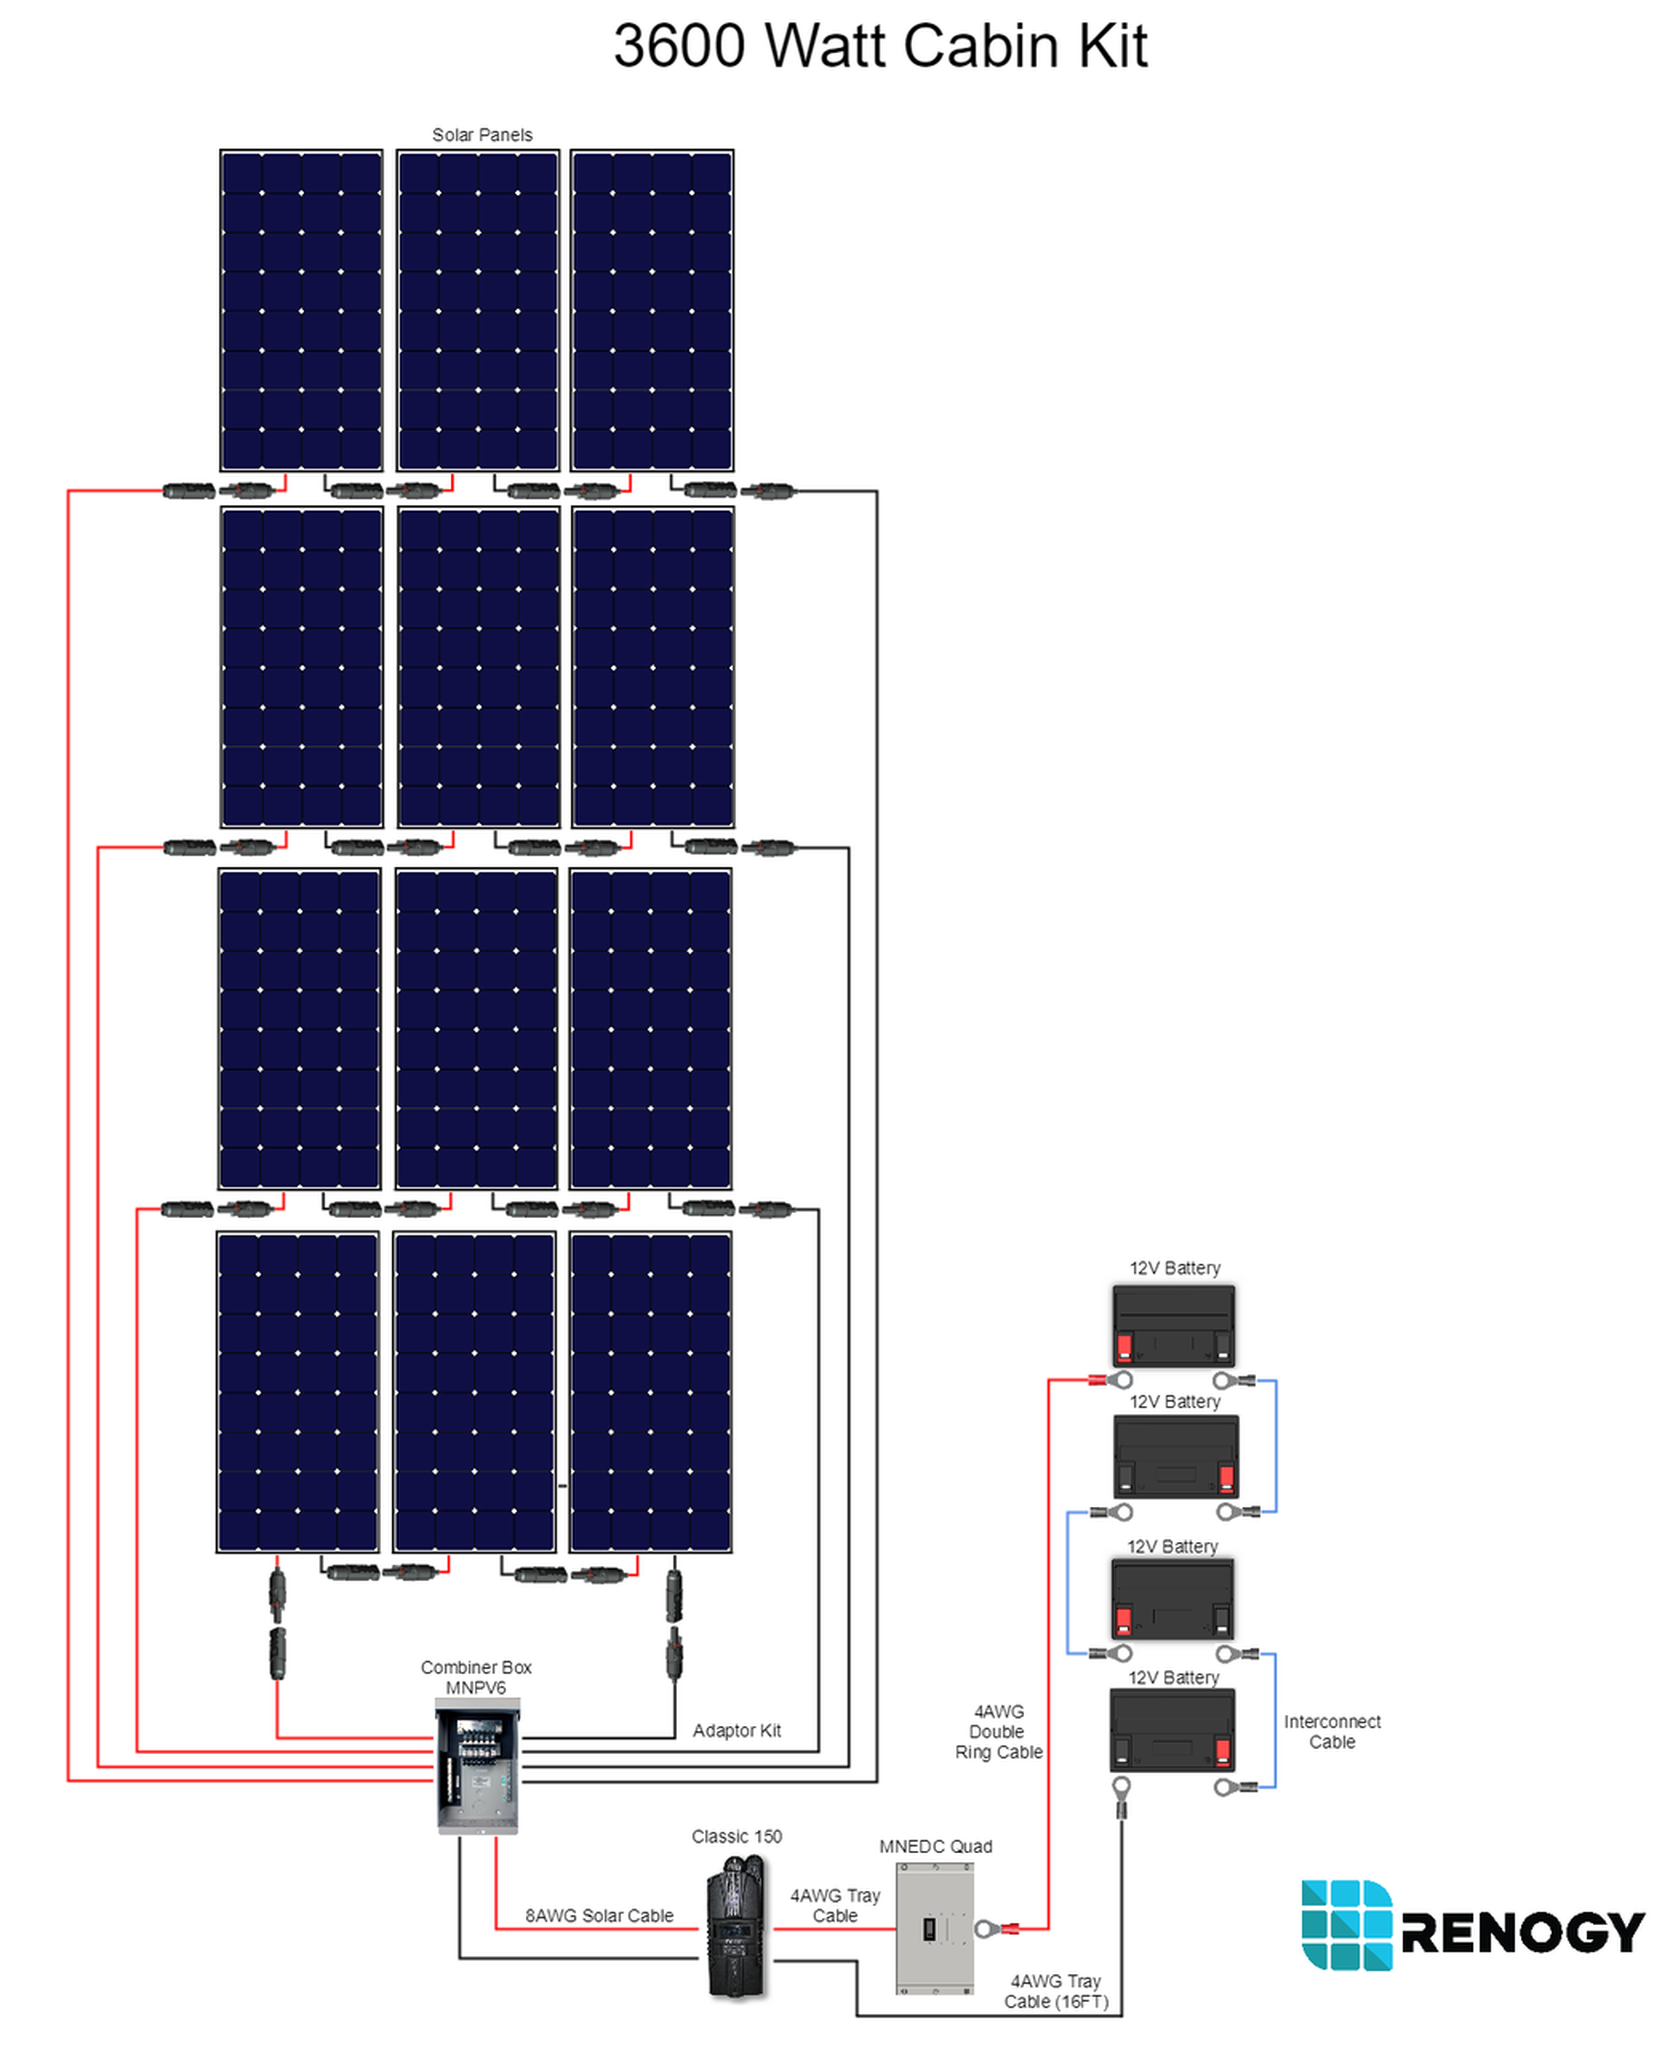 3600 Watt 48 Volt Monocrystalline Solar Cabin Kit Solar Panel Diagram Wiring on